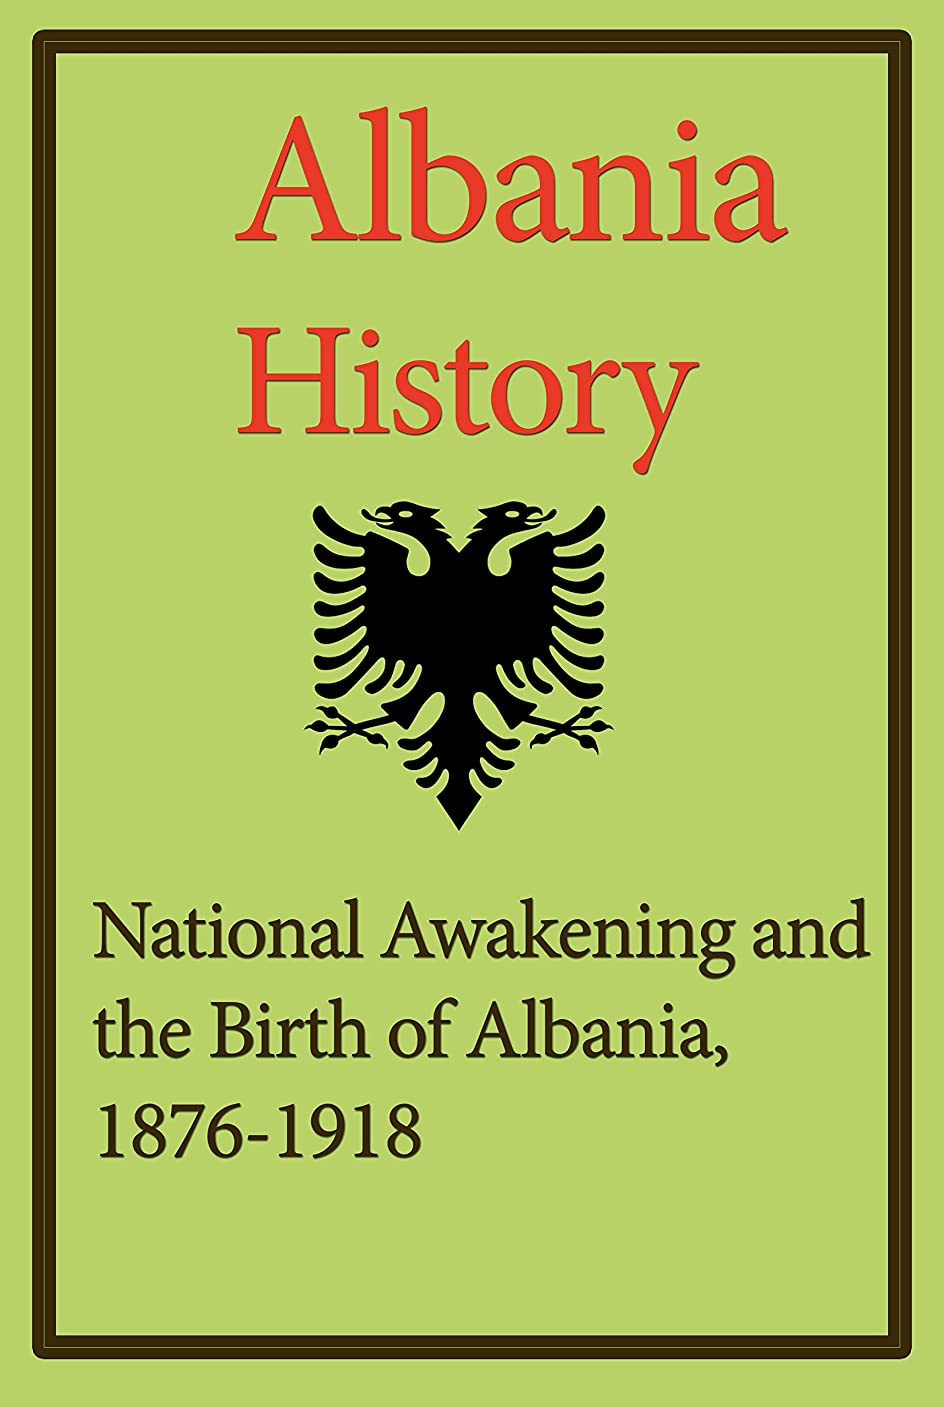 司教年正当なAlbania History, National Awakening and the Birth of Albania, 1876-1918 (Albania (Bradt Travel Guides)): The Society and its Environment, The Economy, Government and Politics. (English Edition)